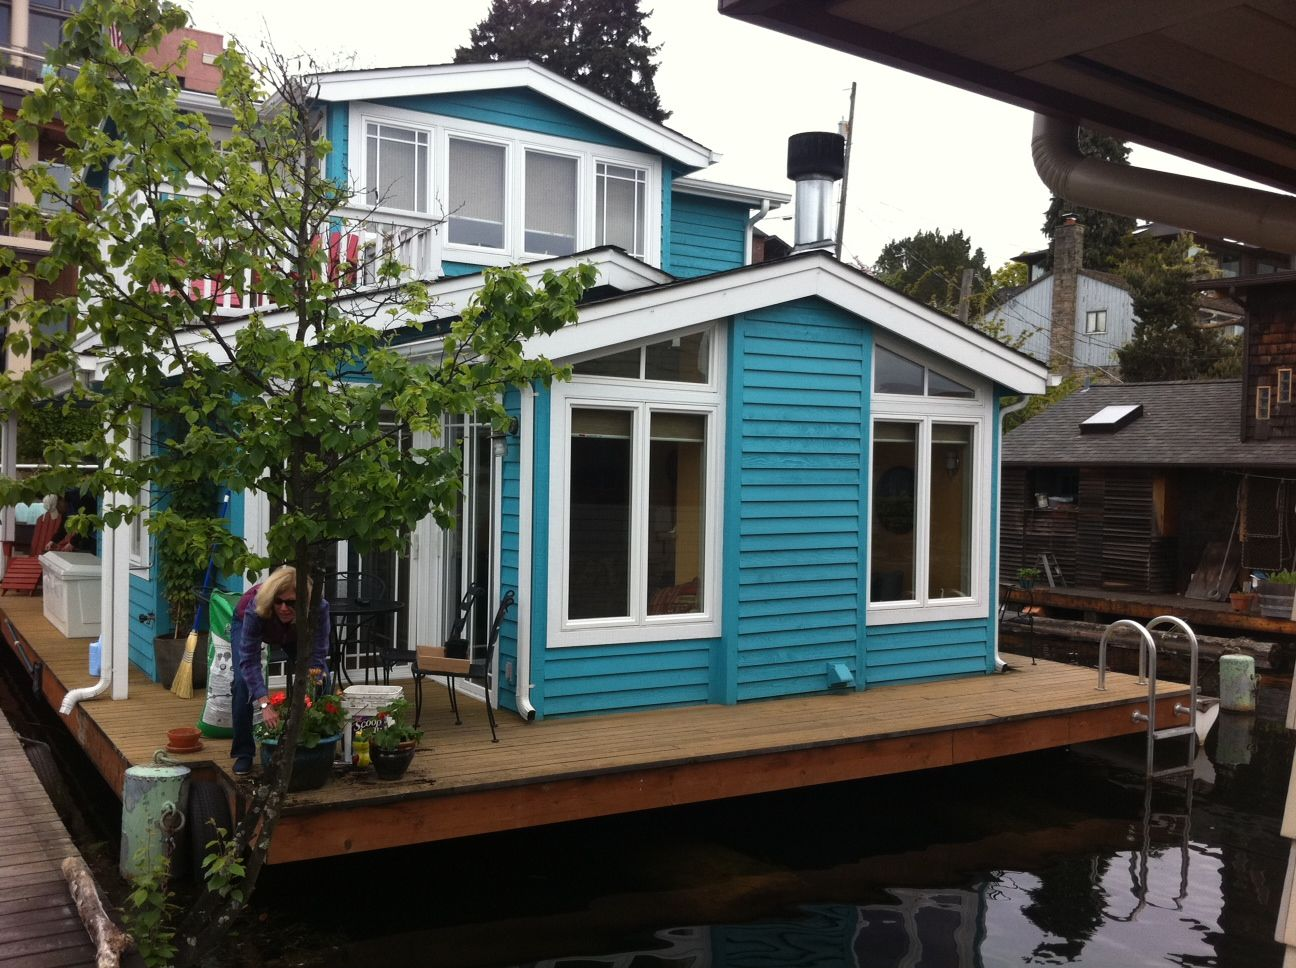 House boats are amazing